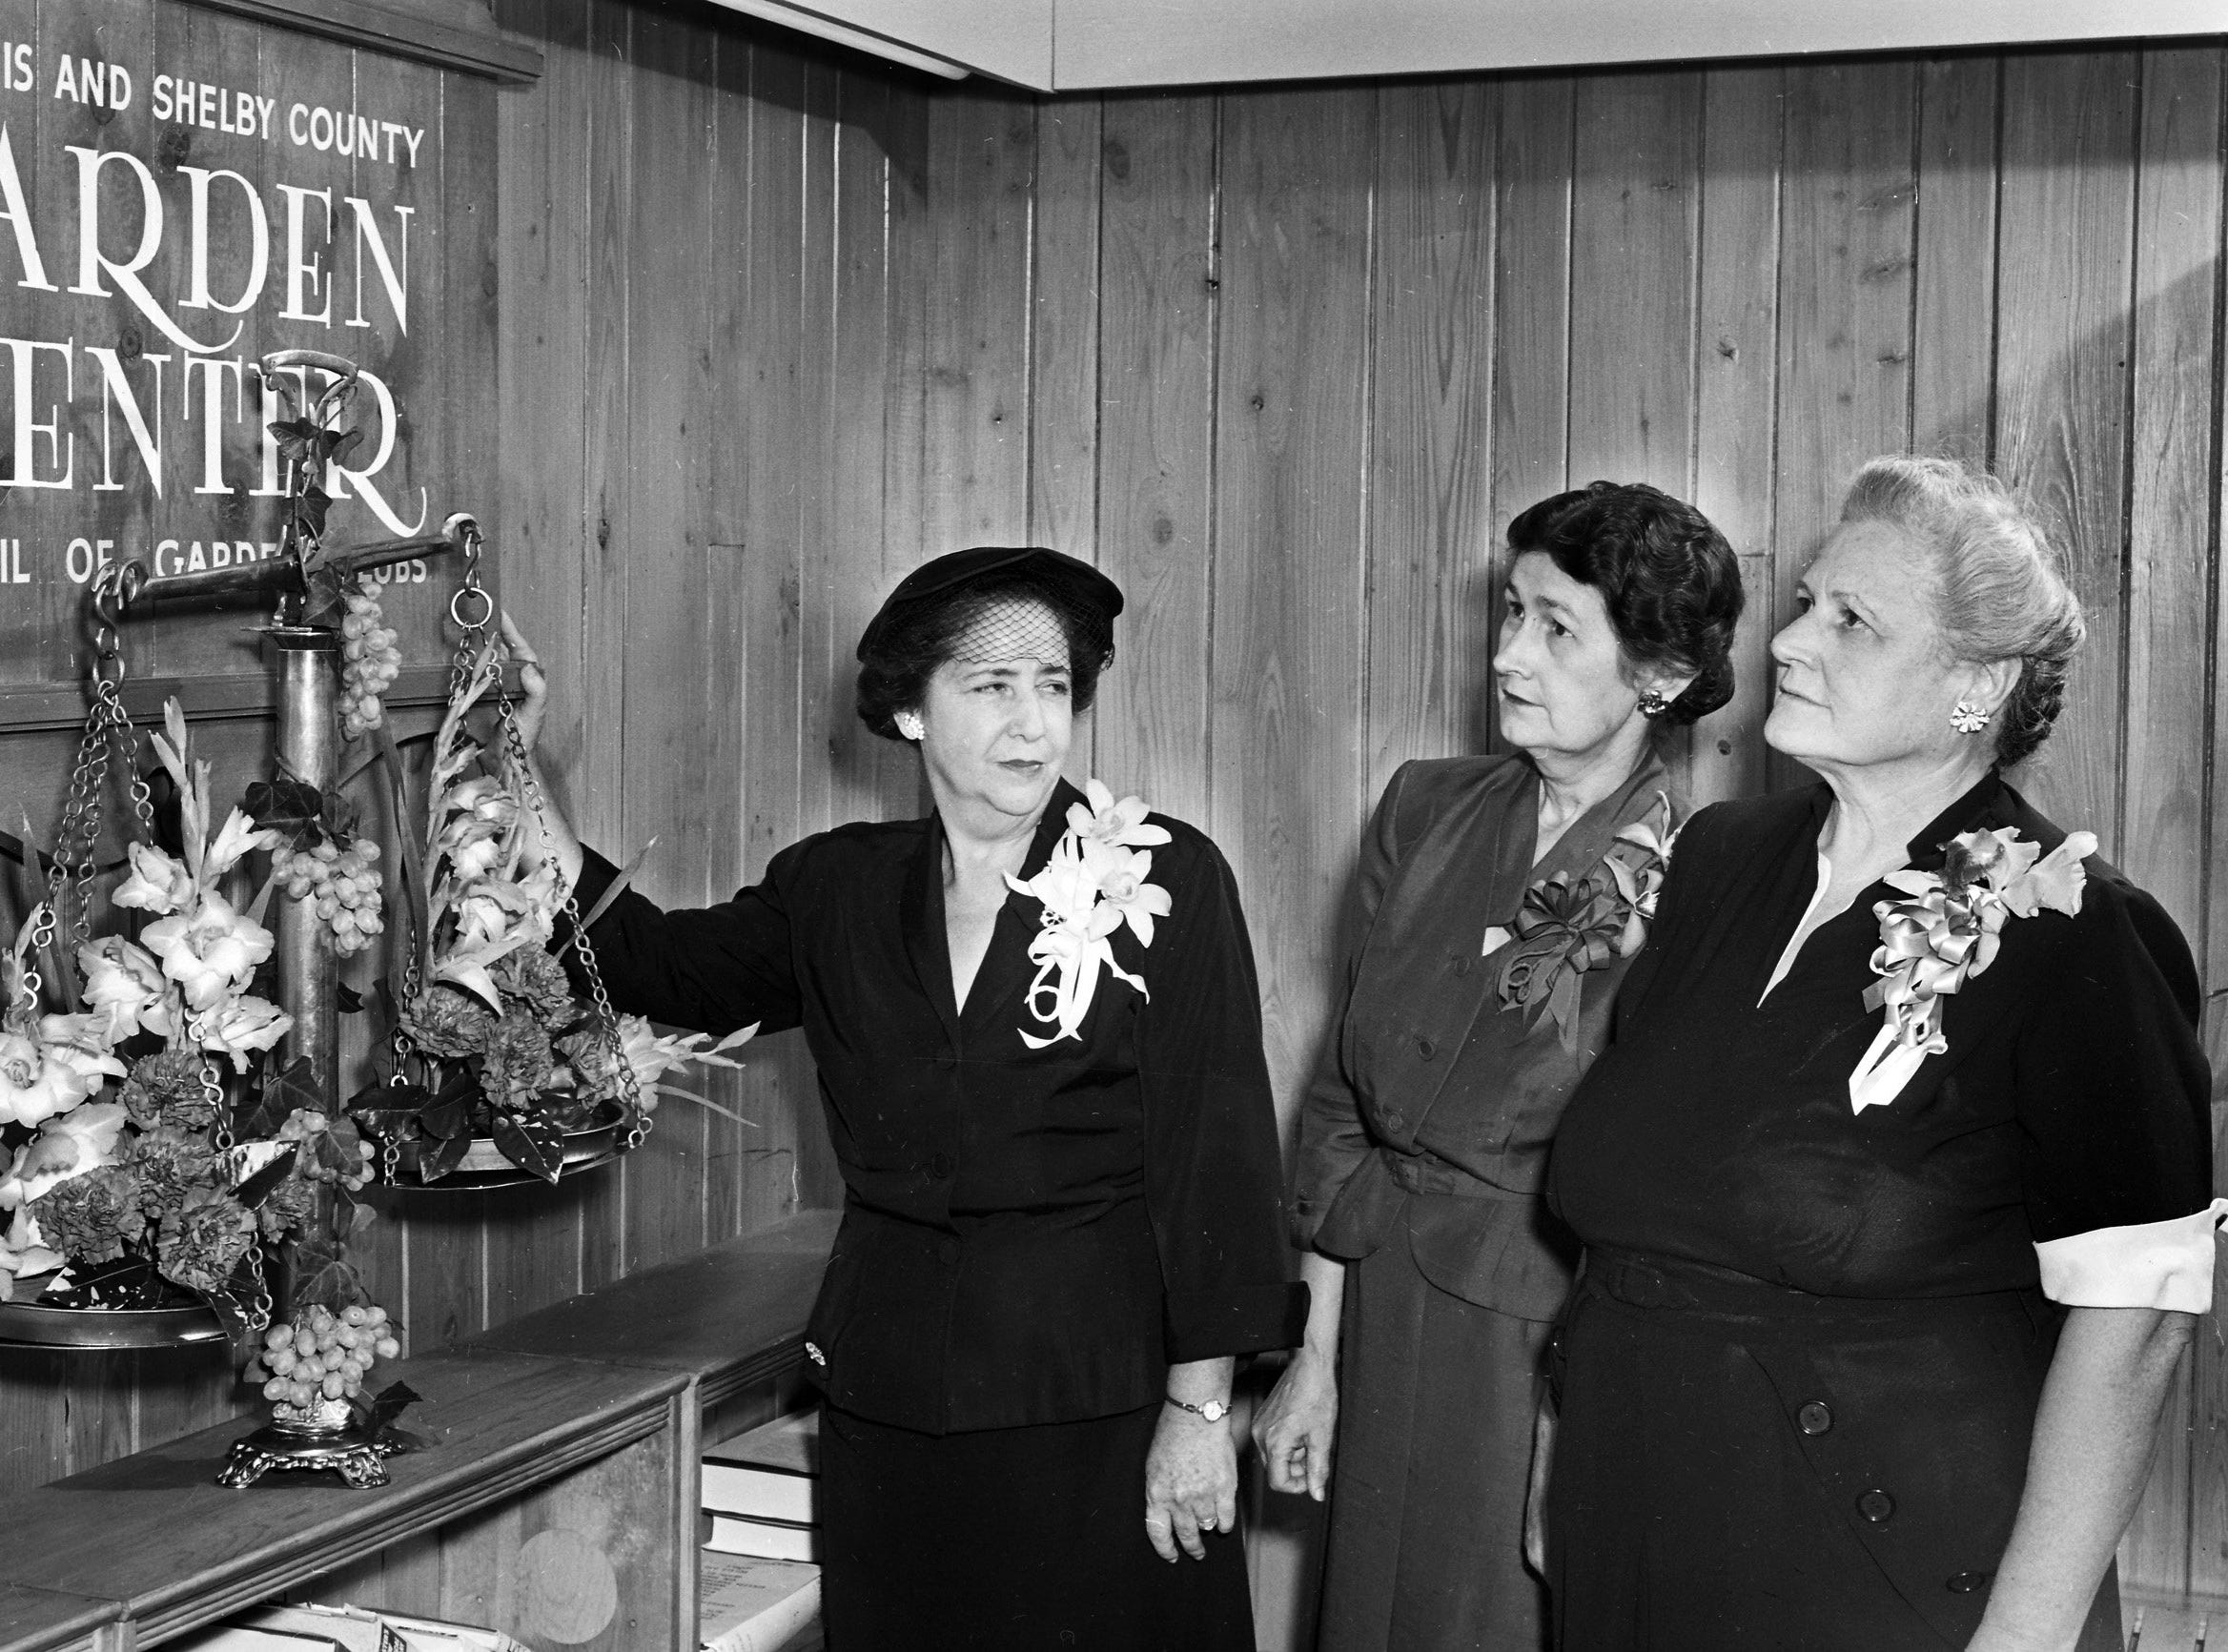 The Garden Center at 448 North Watkins welcomed the public to its exhibits and library of horticulture following an open house for the Memphis and Shelby County Council of Garden Clubs in September 1952.  Leaders in establishing the city's first permanent garden information clearing house are (From Left)  Mrs. Lemuel Earl Dickey of Germantown, president of the council; Mrs. Grace Walker Scheibler, director of the center and Mrs. J.A. Hamlet, chairman of the center.